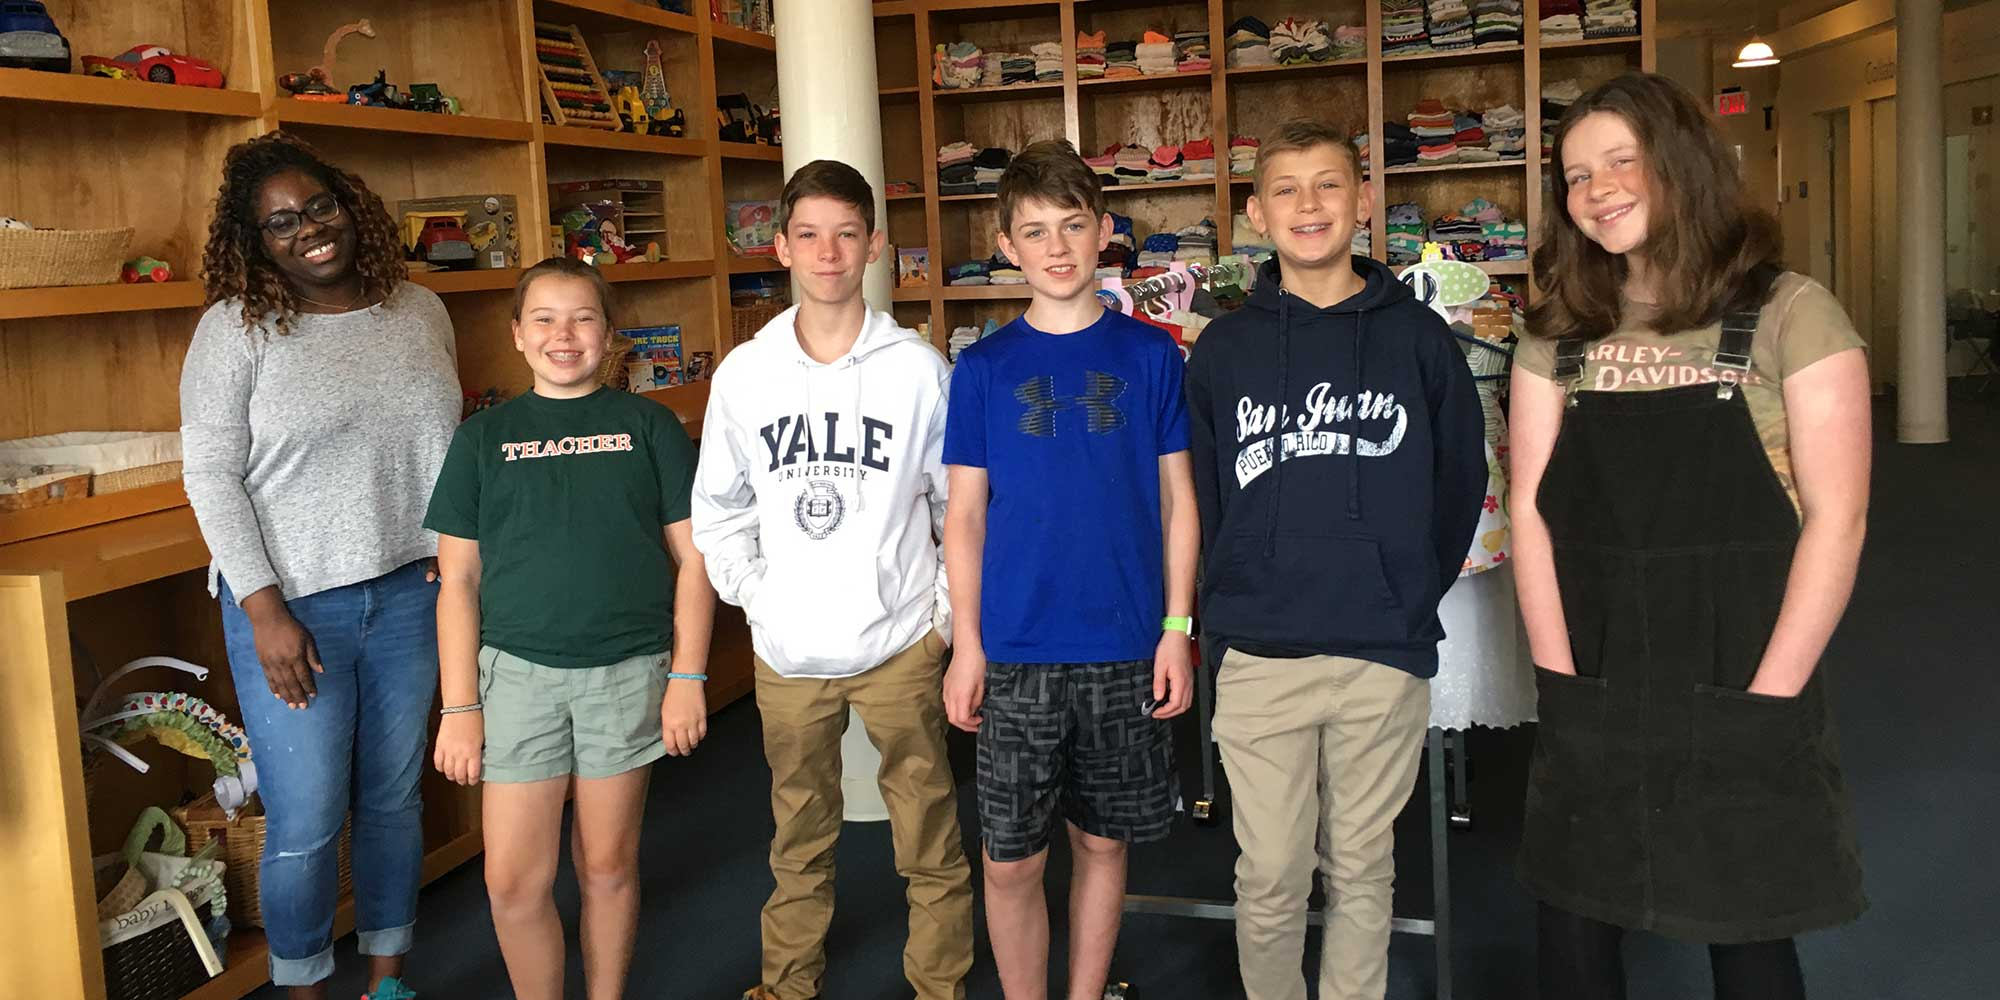 Students volunteer at Room to Grow in Boston